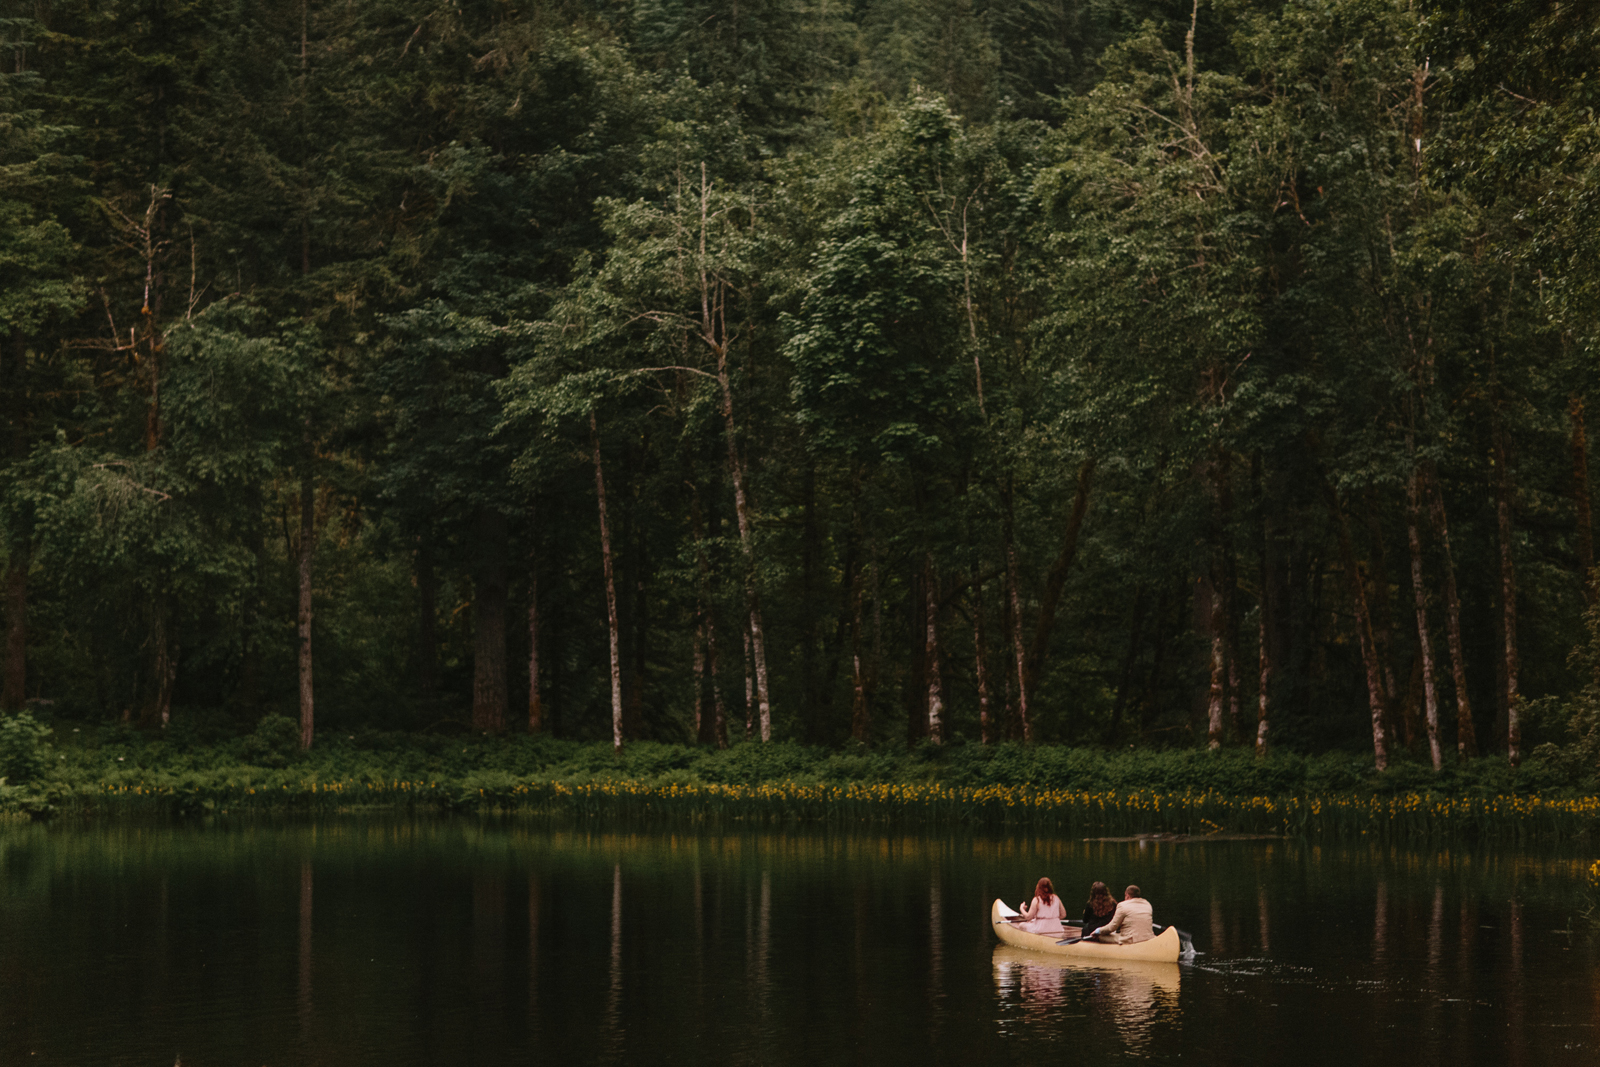 Wedding guests paddle a canoe during a wedding reception at Bridal Veil Lakes in Corbett, Oregon